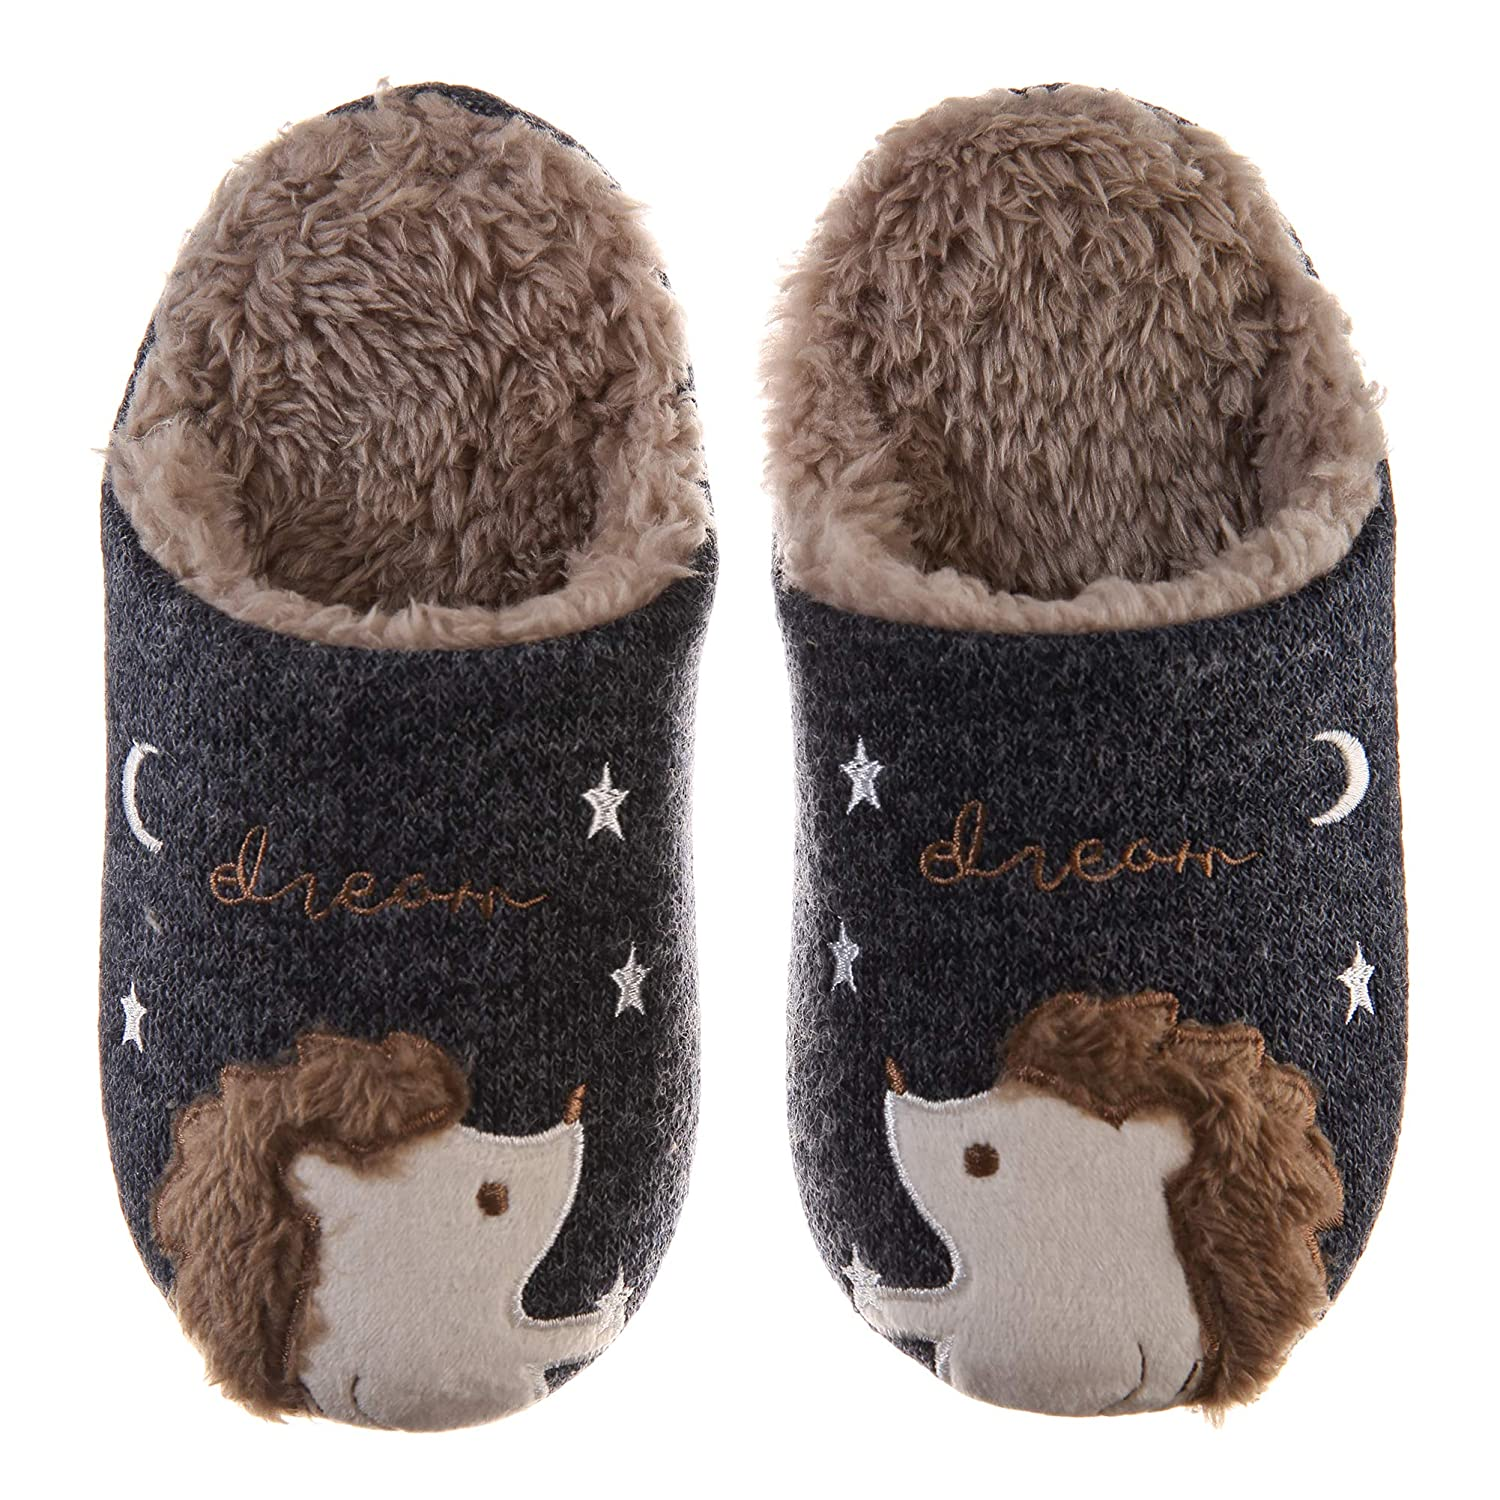 8f2179657 Amazon.com | Kids Boy Girls Cute Animal House Slippers Soft Warm Hedgehog  Indoor Fuzzy Plush Waterproof Sole Slipper Shoes | Slippers